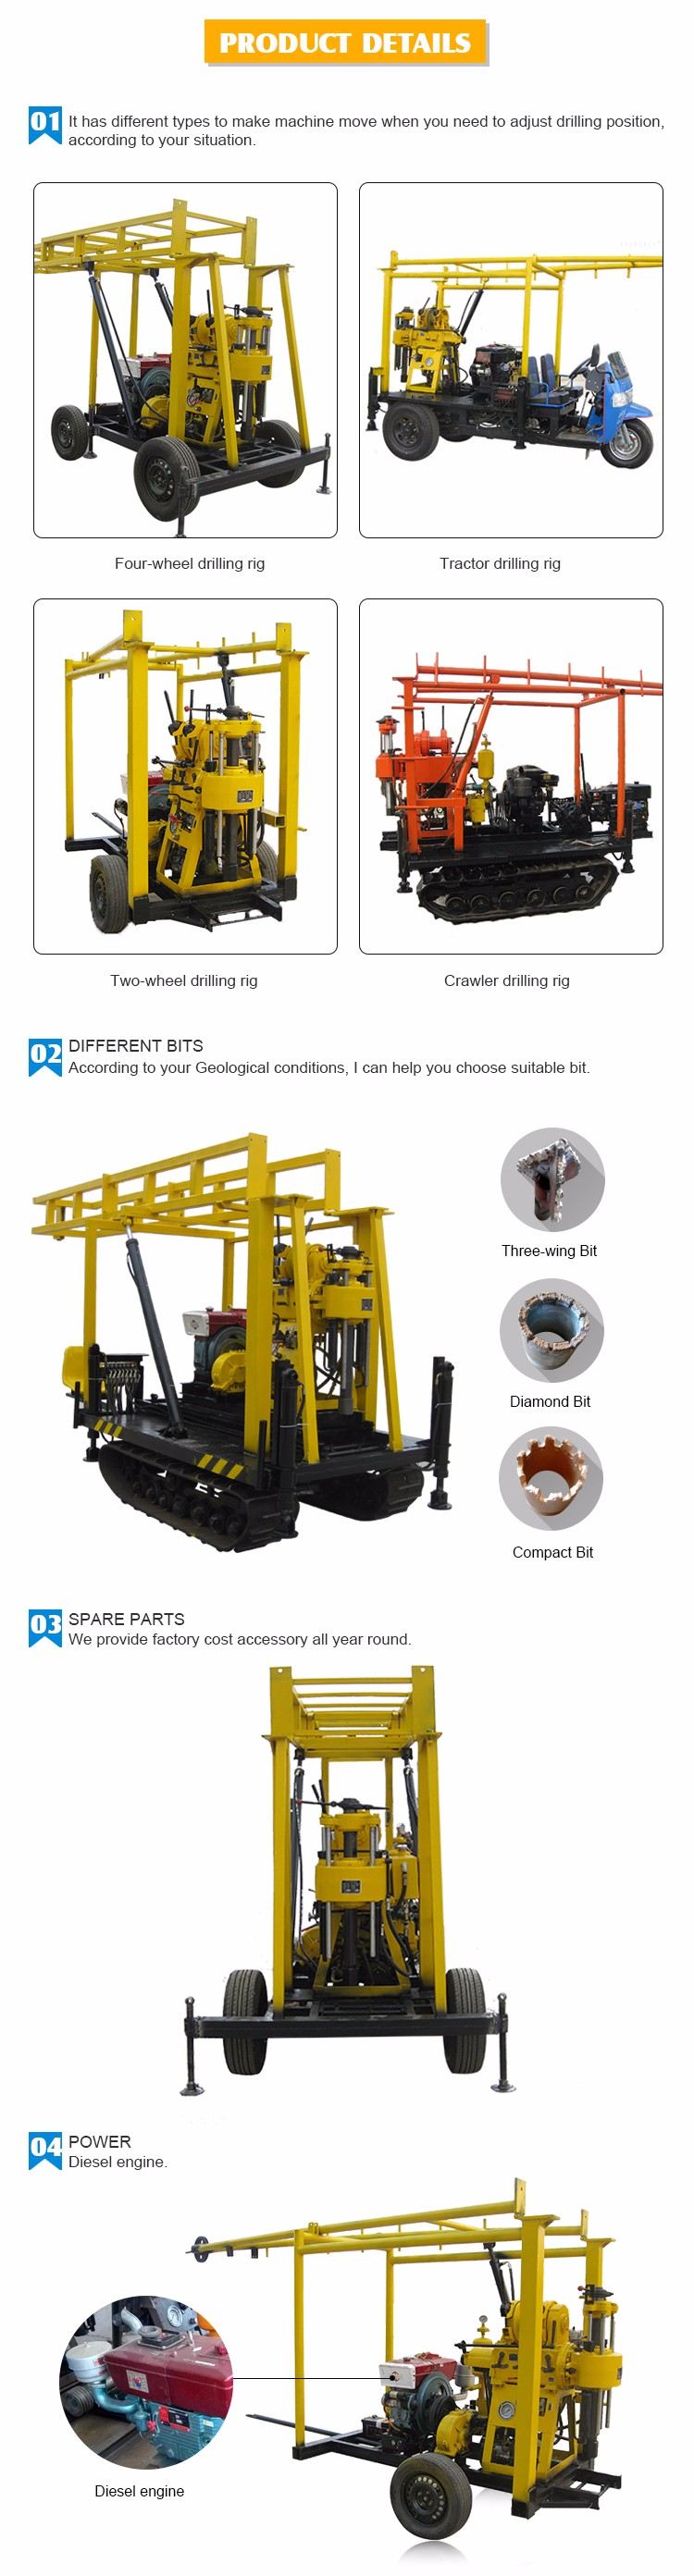 directional drilling machine for sale